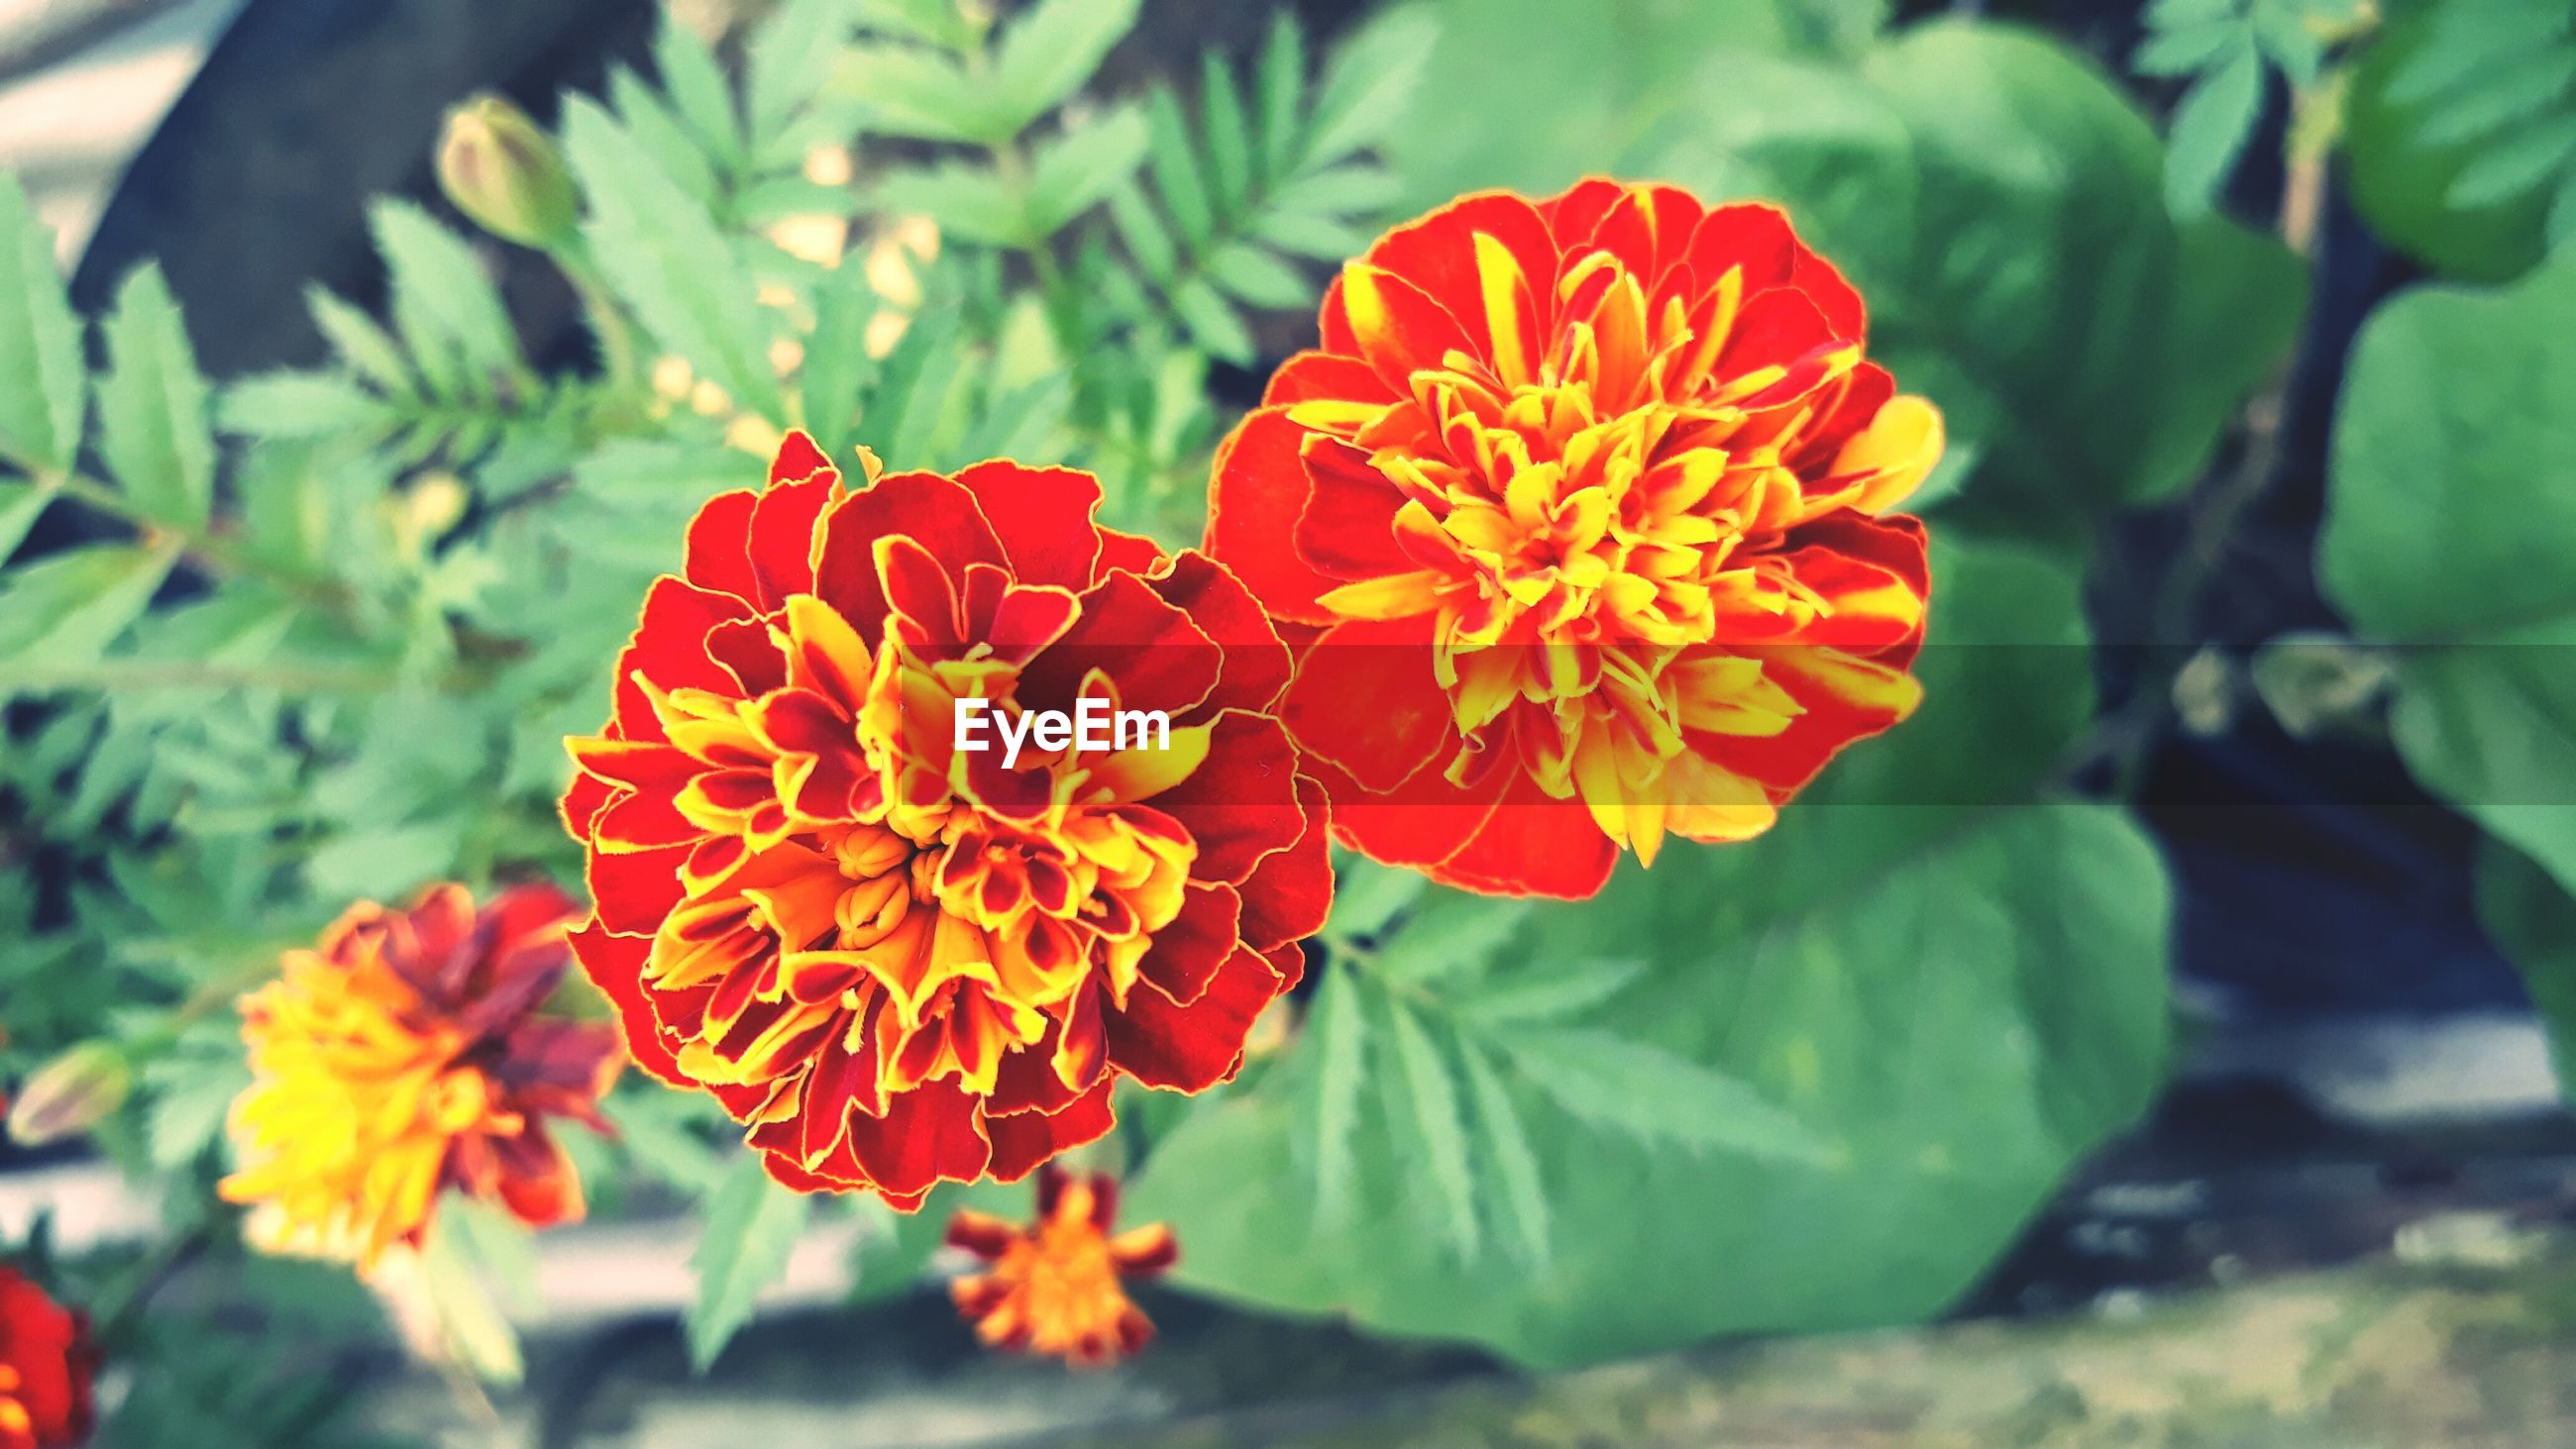 flower, beauty in nature, petal, growth, freshness, flower head, nature, fragility, blooming, plant, orange color, no people, focus on foreground, day, red, outdoors, zinnia, park - man made space, marigold, close-up